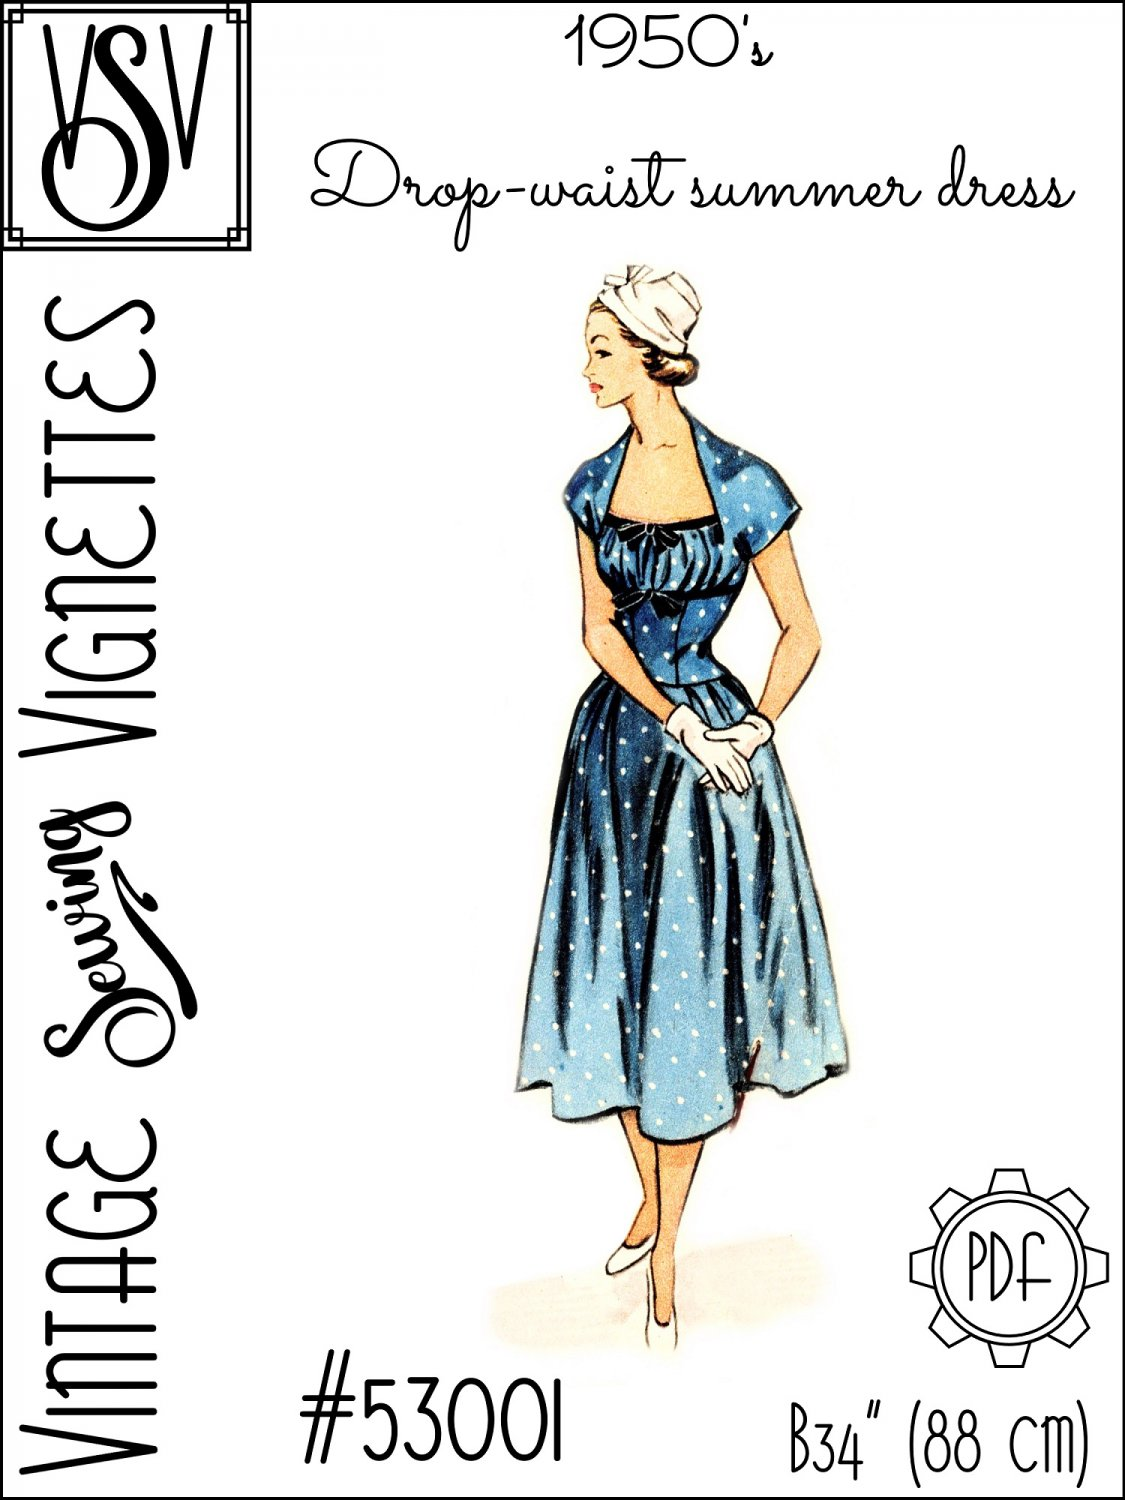 "1950's Drop-waist summer dress (B34"") [VSV #53001] PDF sewing pattern"